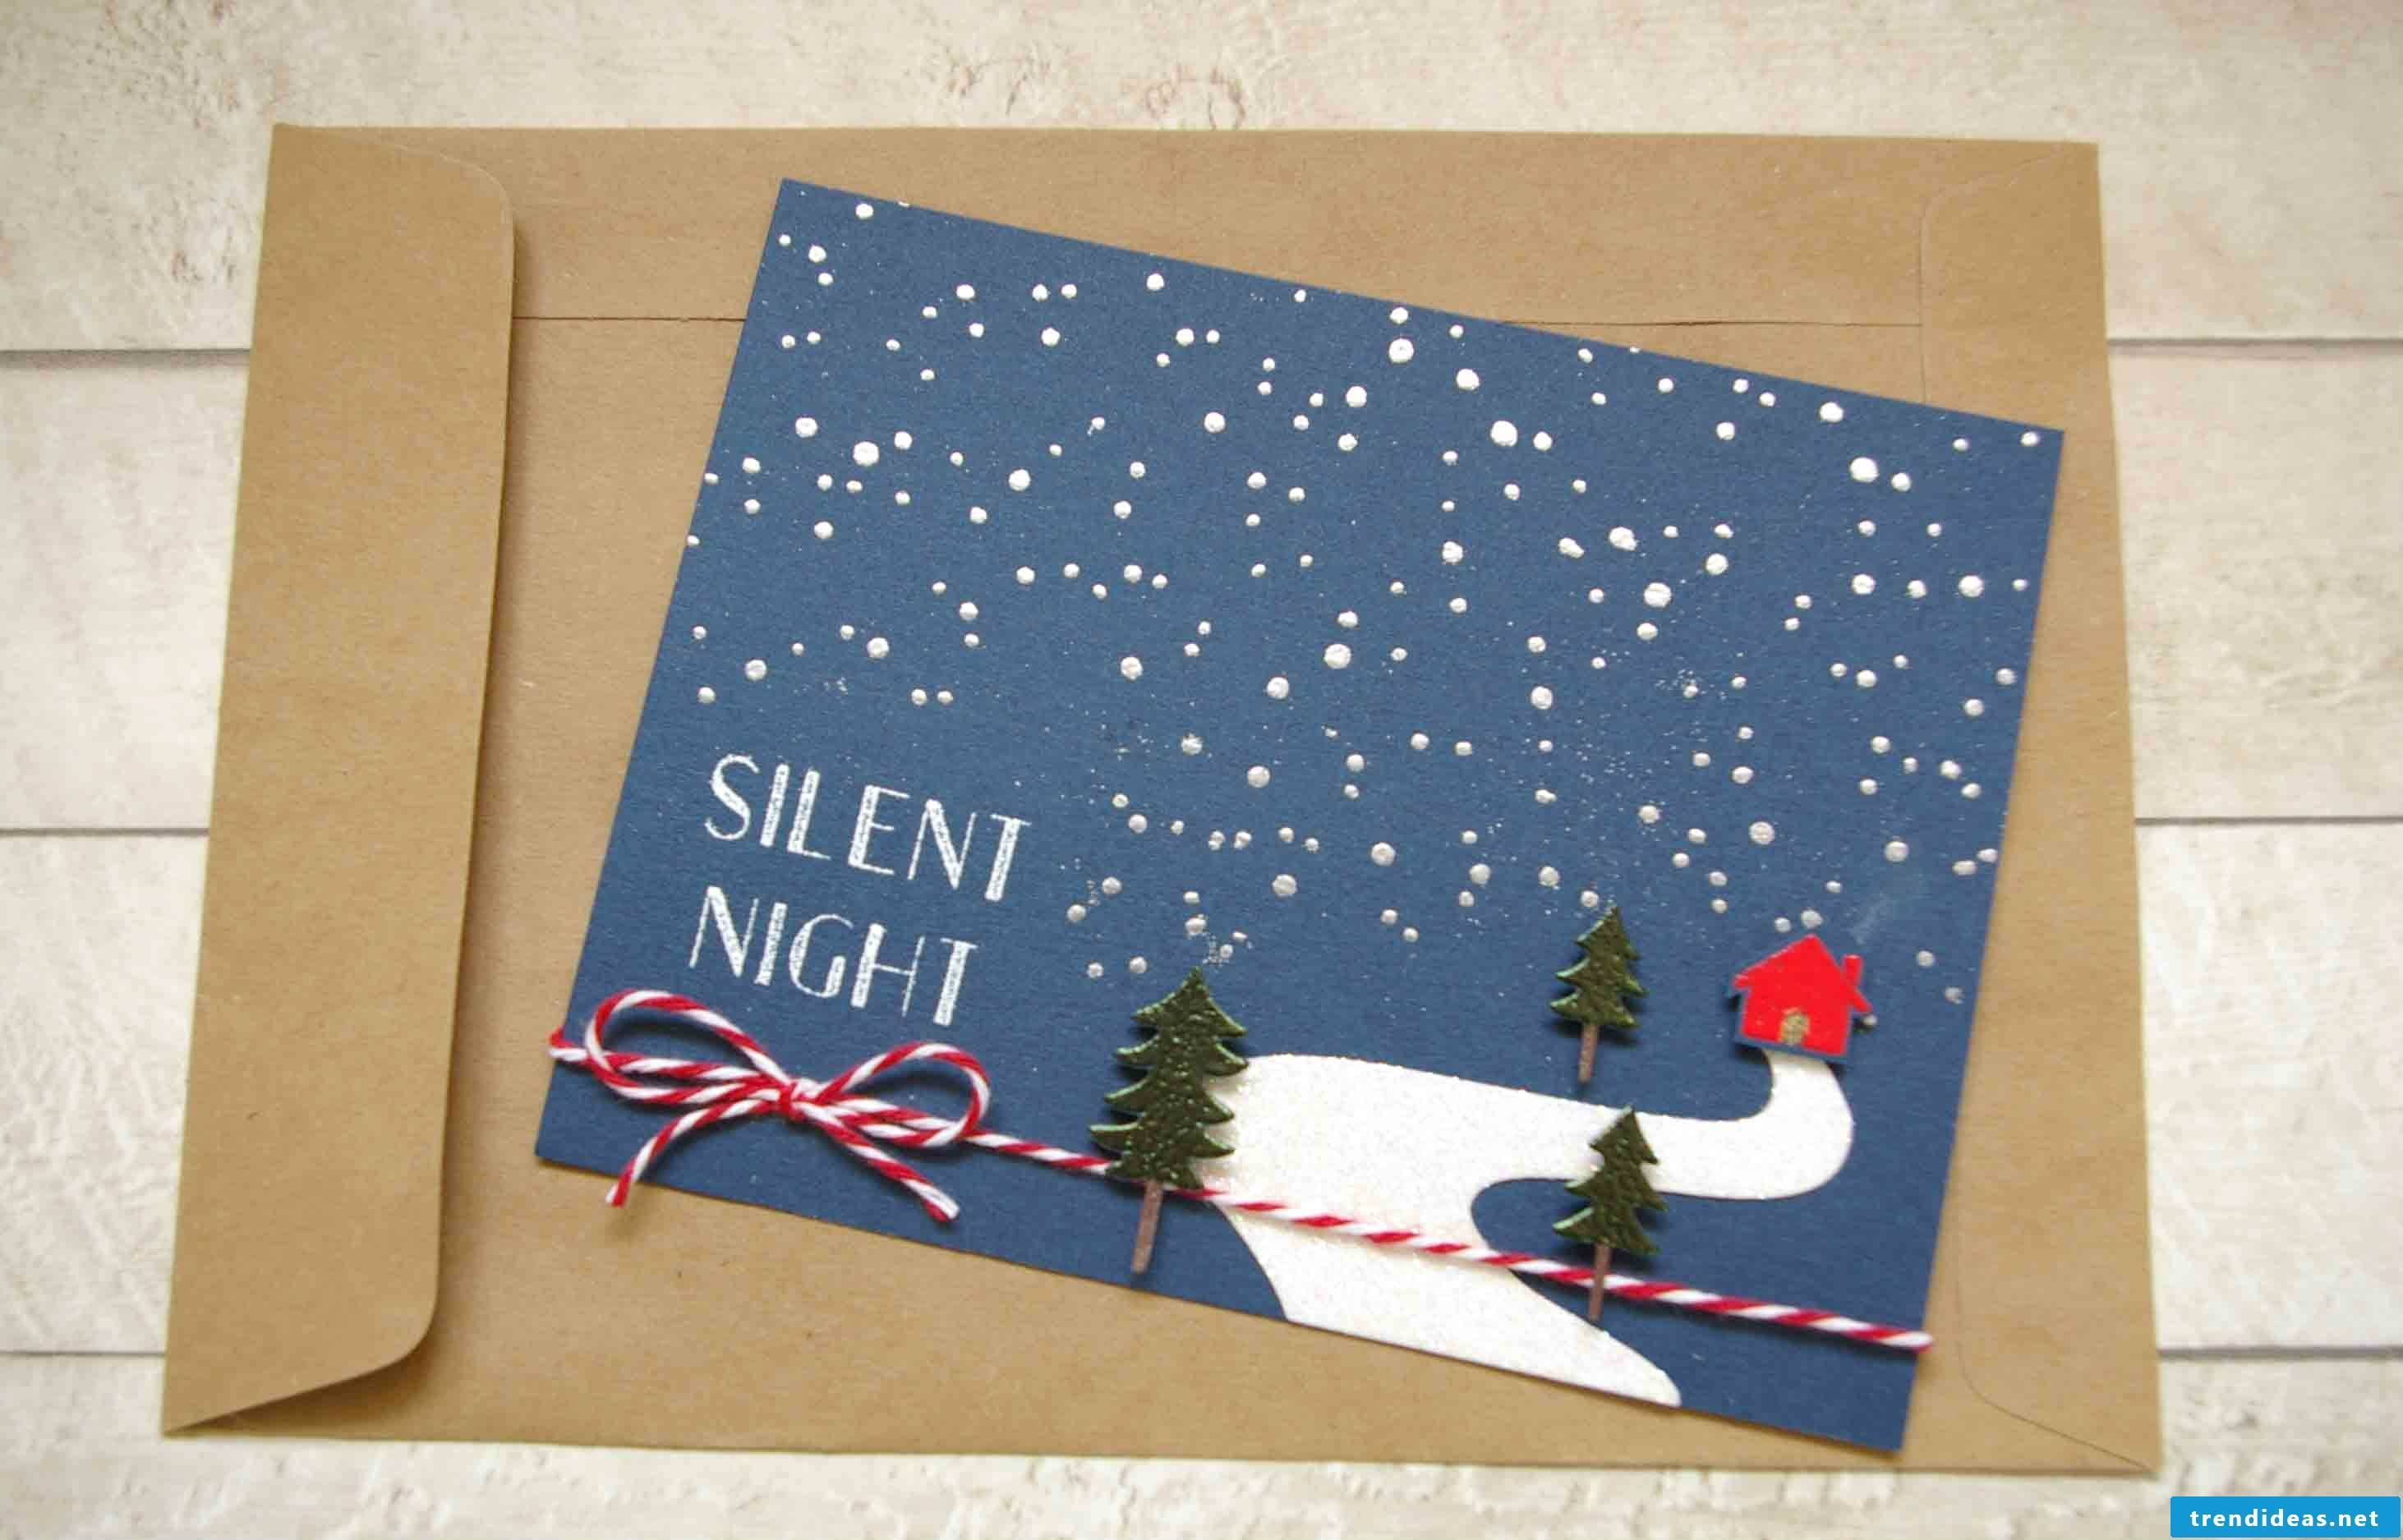 Great Christmas card template can be found here!